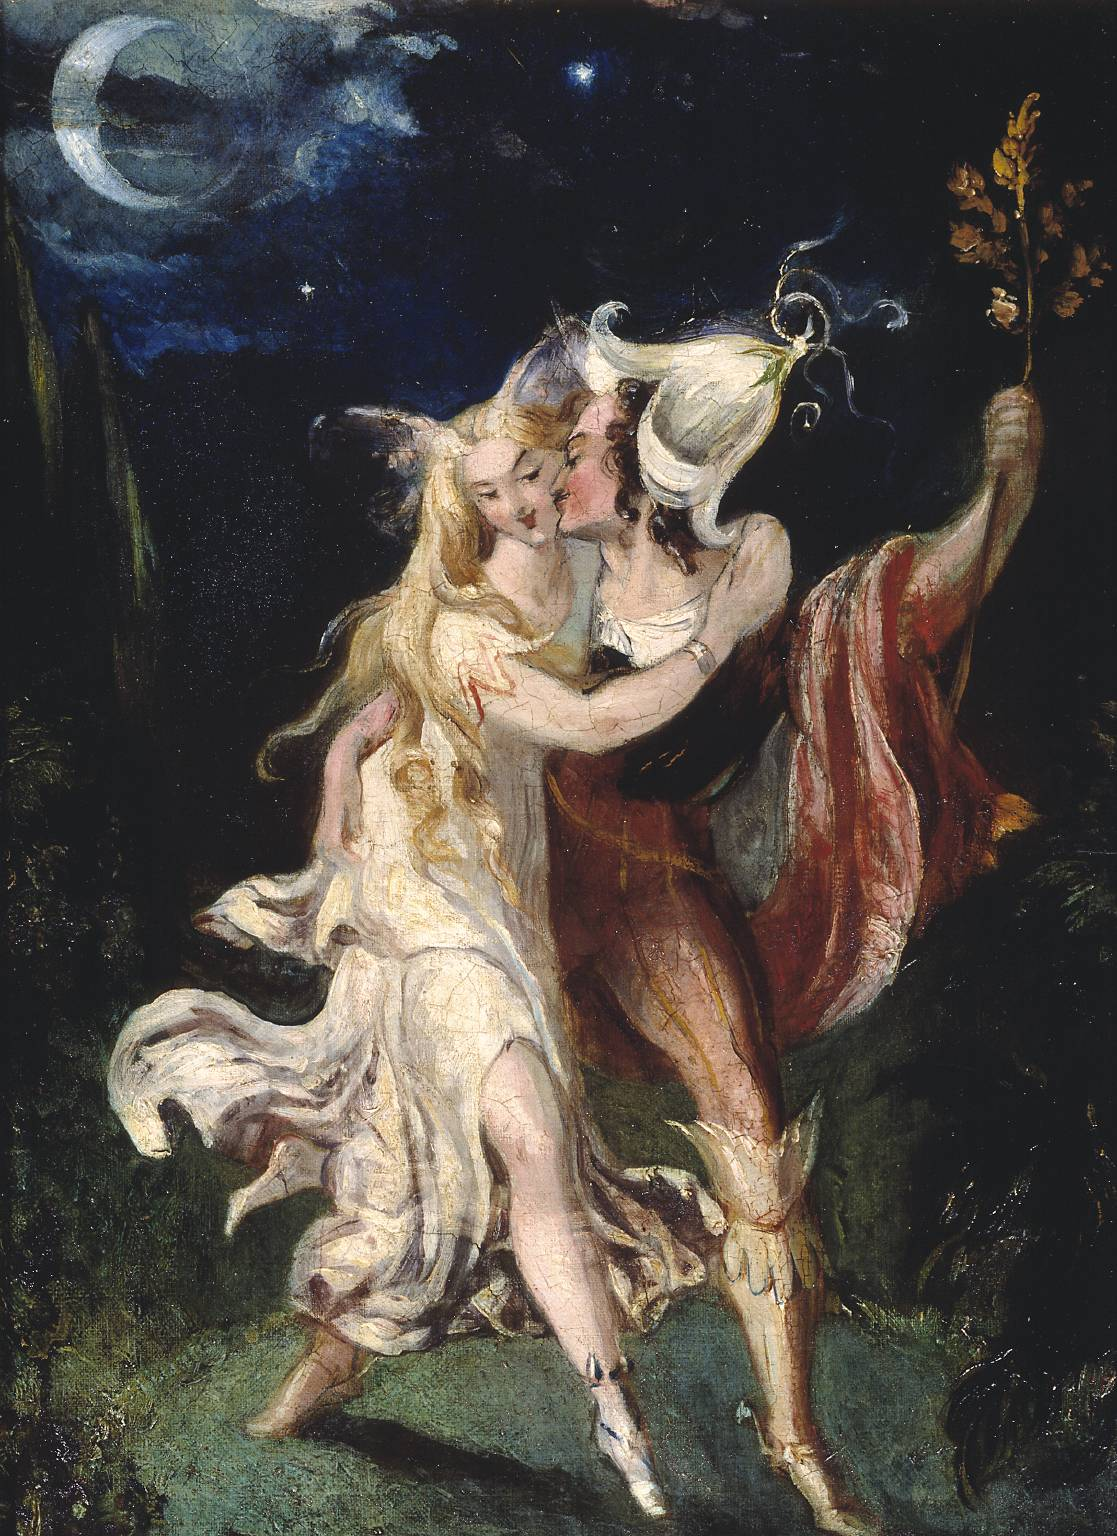 The Fairy Lovers by Theodore Von Holst, c.1840.